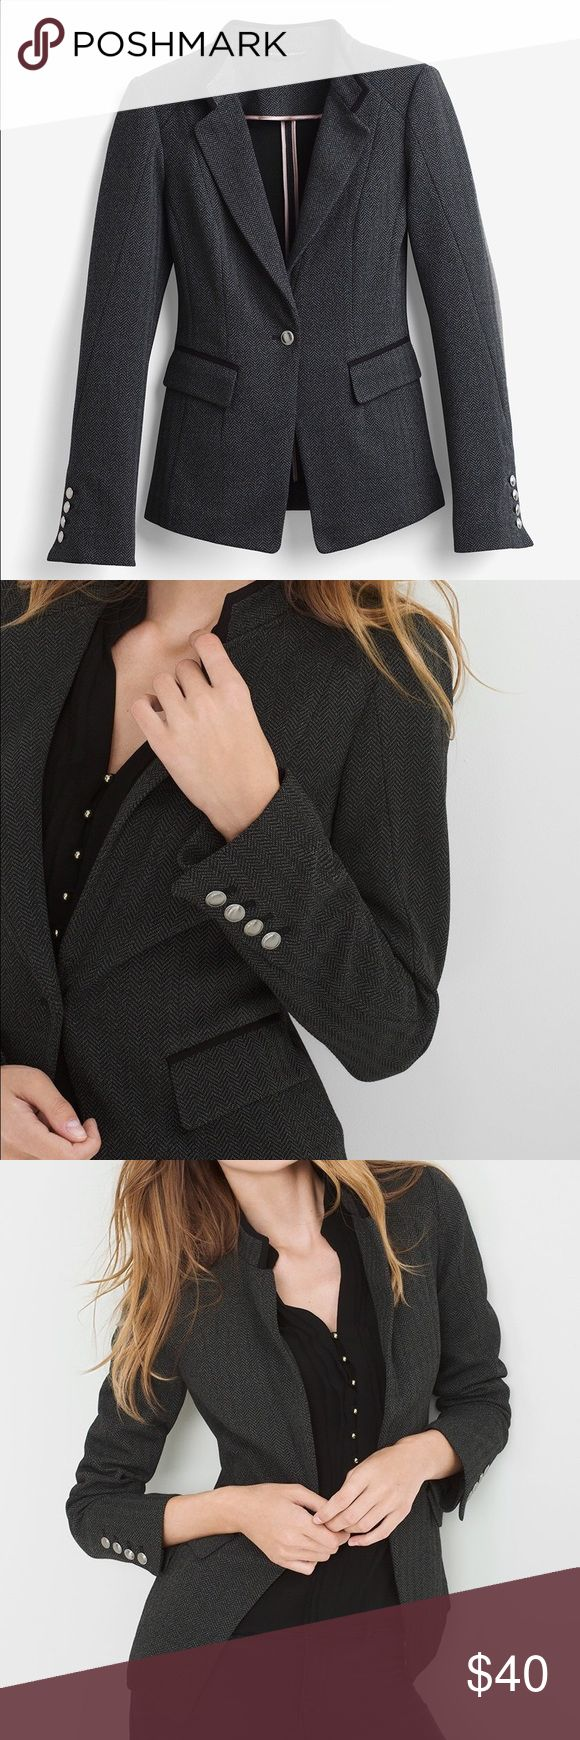 BRAND NEW - WHBM Herringbone jacket Brand new - never been worn - herringbone jacket/blazer. Perfect for a business professional look or dress it down with a pair of jeans and a night out. White House Black Market Jackets & Coats Blazers